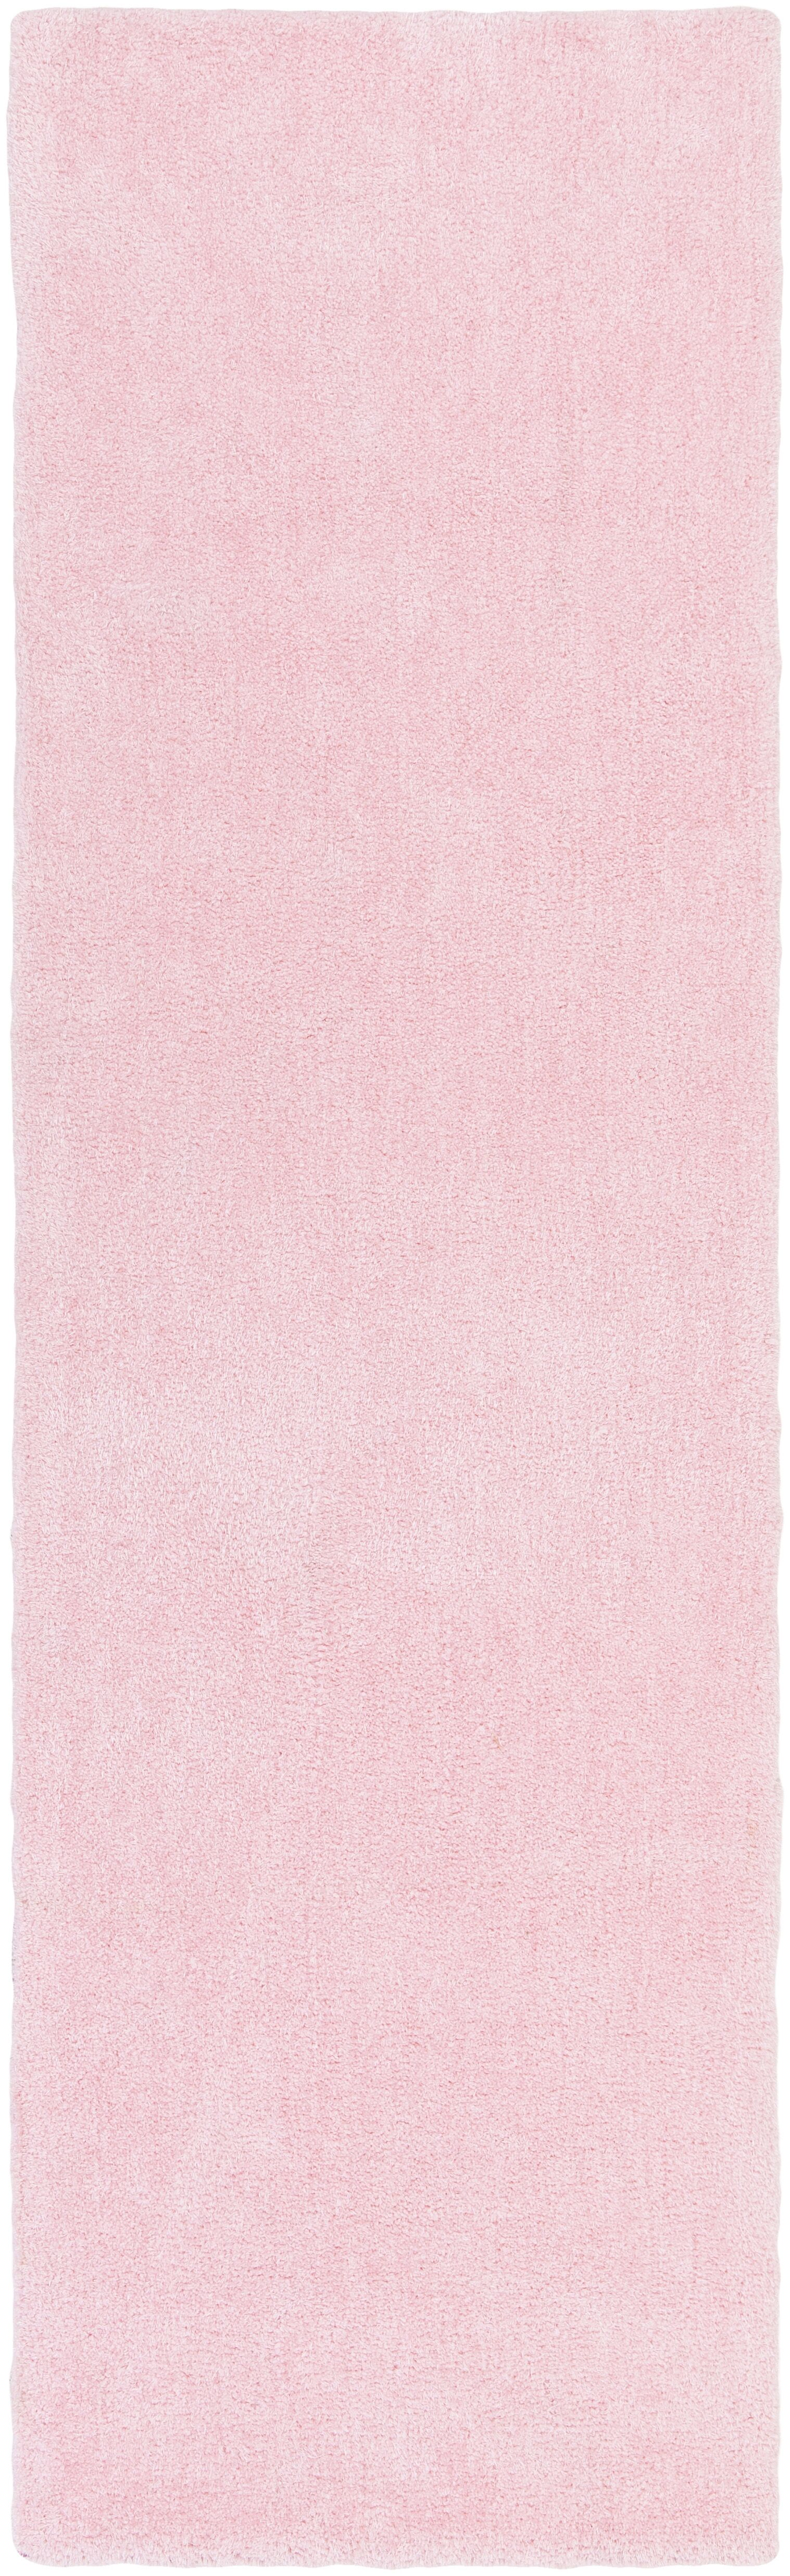 Eckman Light Pink Area Rug Rug Size: Runner 2'3